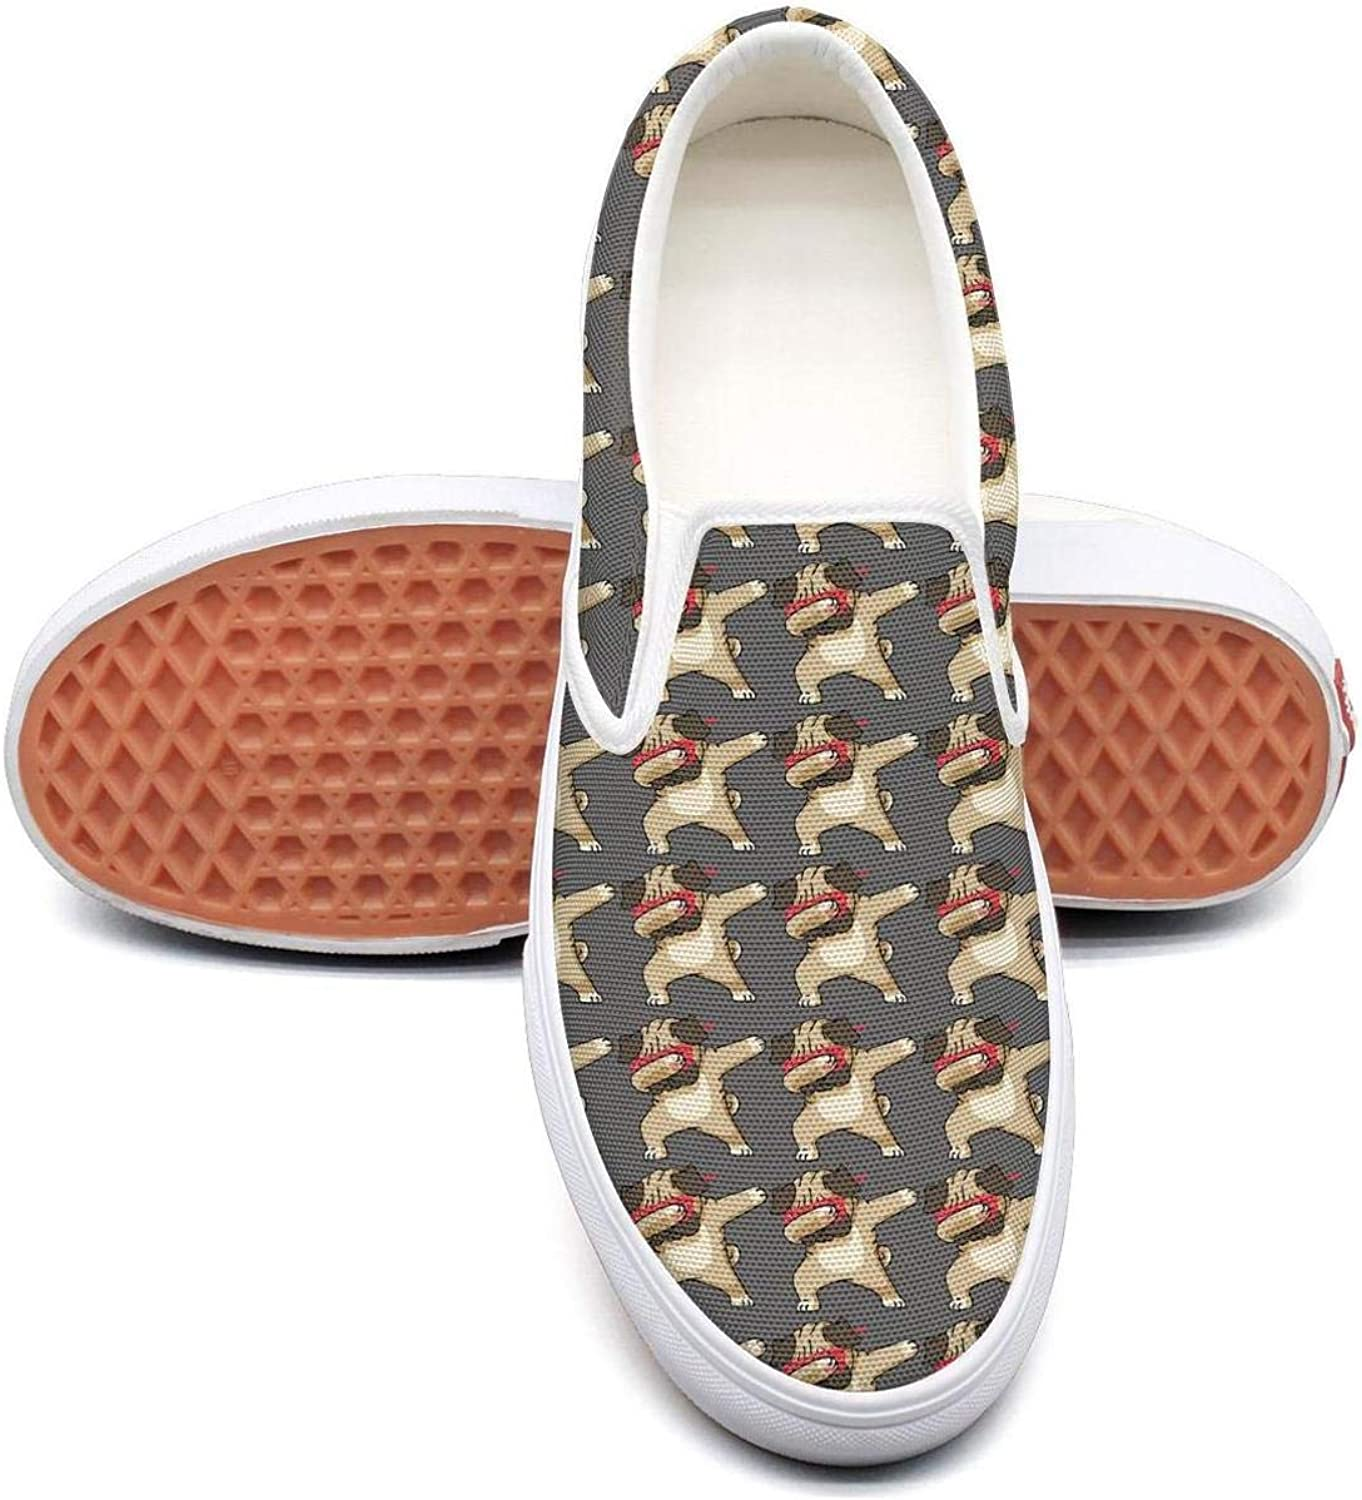 Refyds-es Dabbing Pug Funny Dab Hip Hop Dabbing Kitten Womens Fashion Slip on Low Top Lightweight Canvas Athletic Sneakers